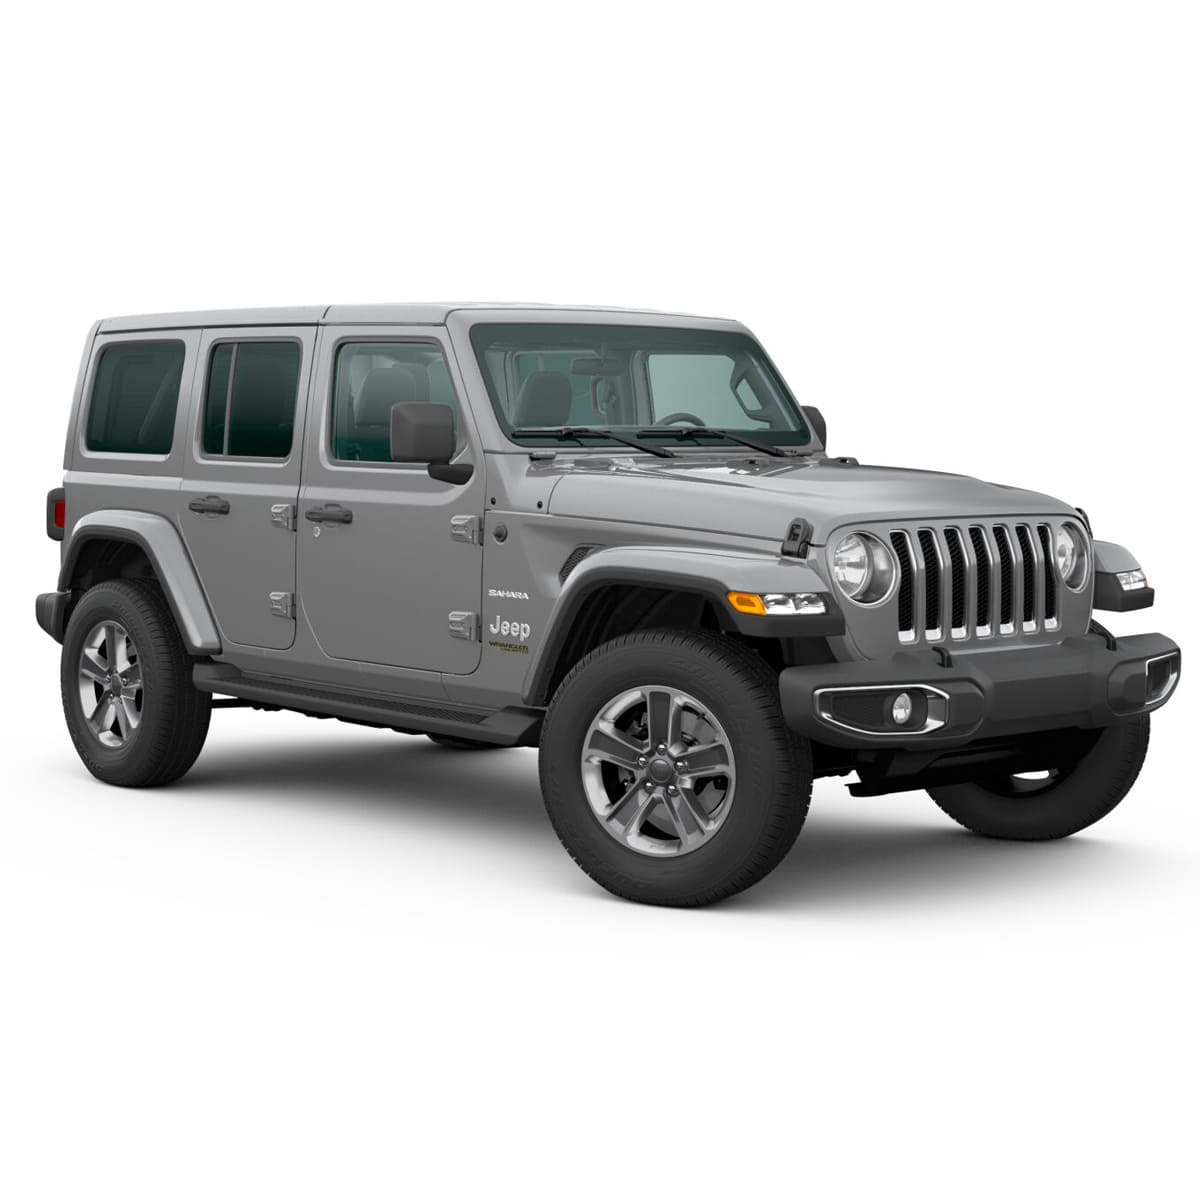 Jeep ALL NEW WRANGLER UNLIMITED SAHARA 4X4 3.6L AT STING GRAY CLEAR COAT